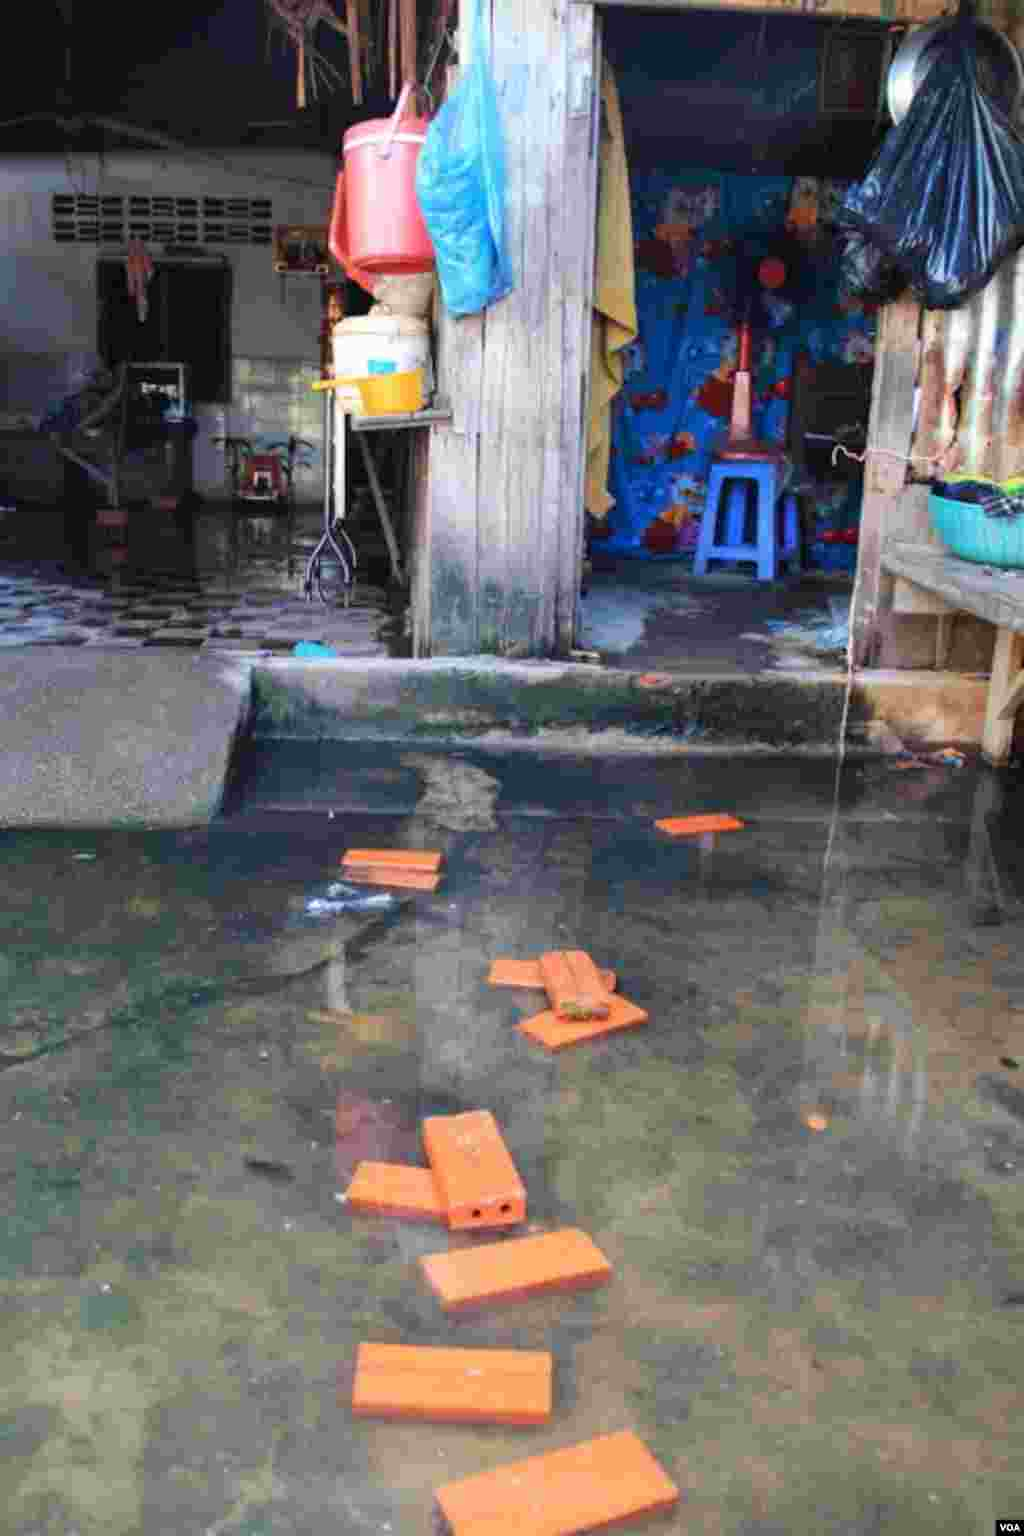 The flood water from the rain is still there in front of Khoeun Sovat's house in Boeung Kak community in Phnom Penh, Cambodia, Nov. 13, 2014. (Nov Povleakhena/VOA Khmer)